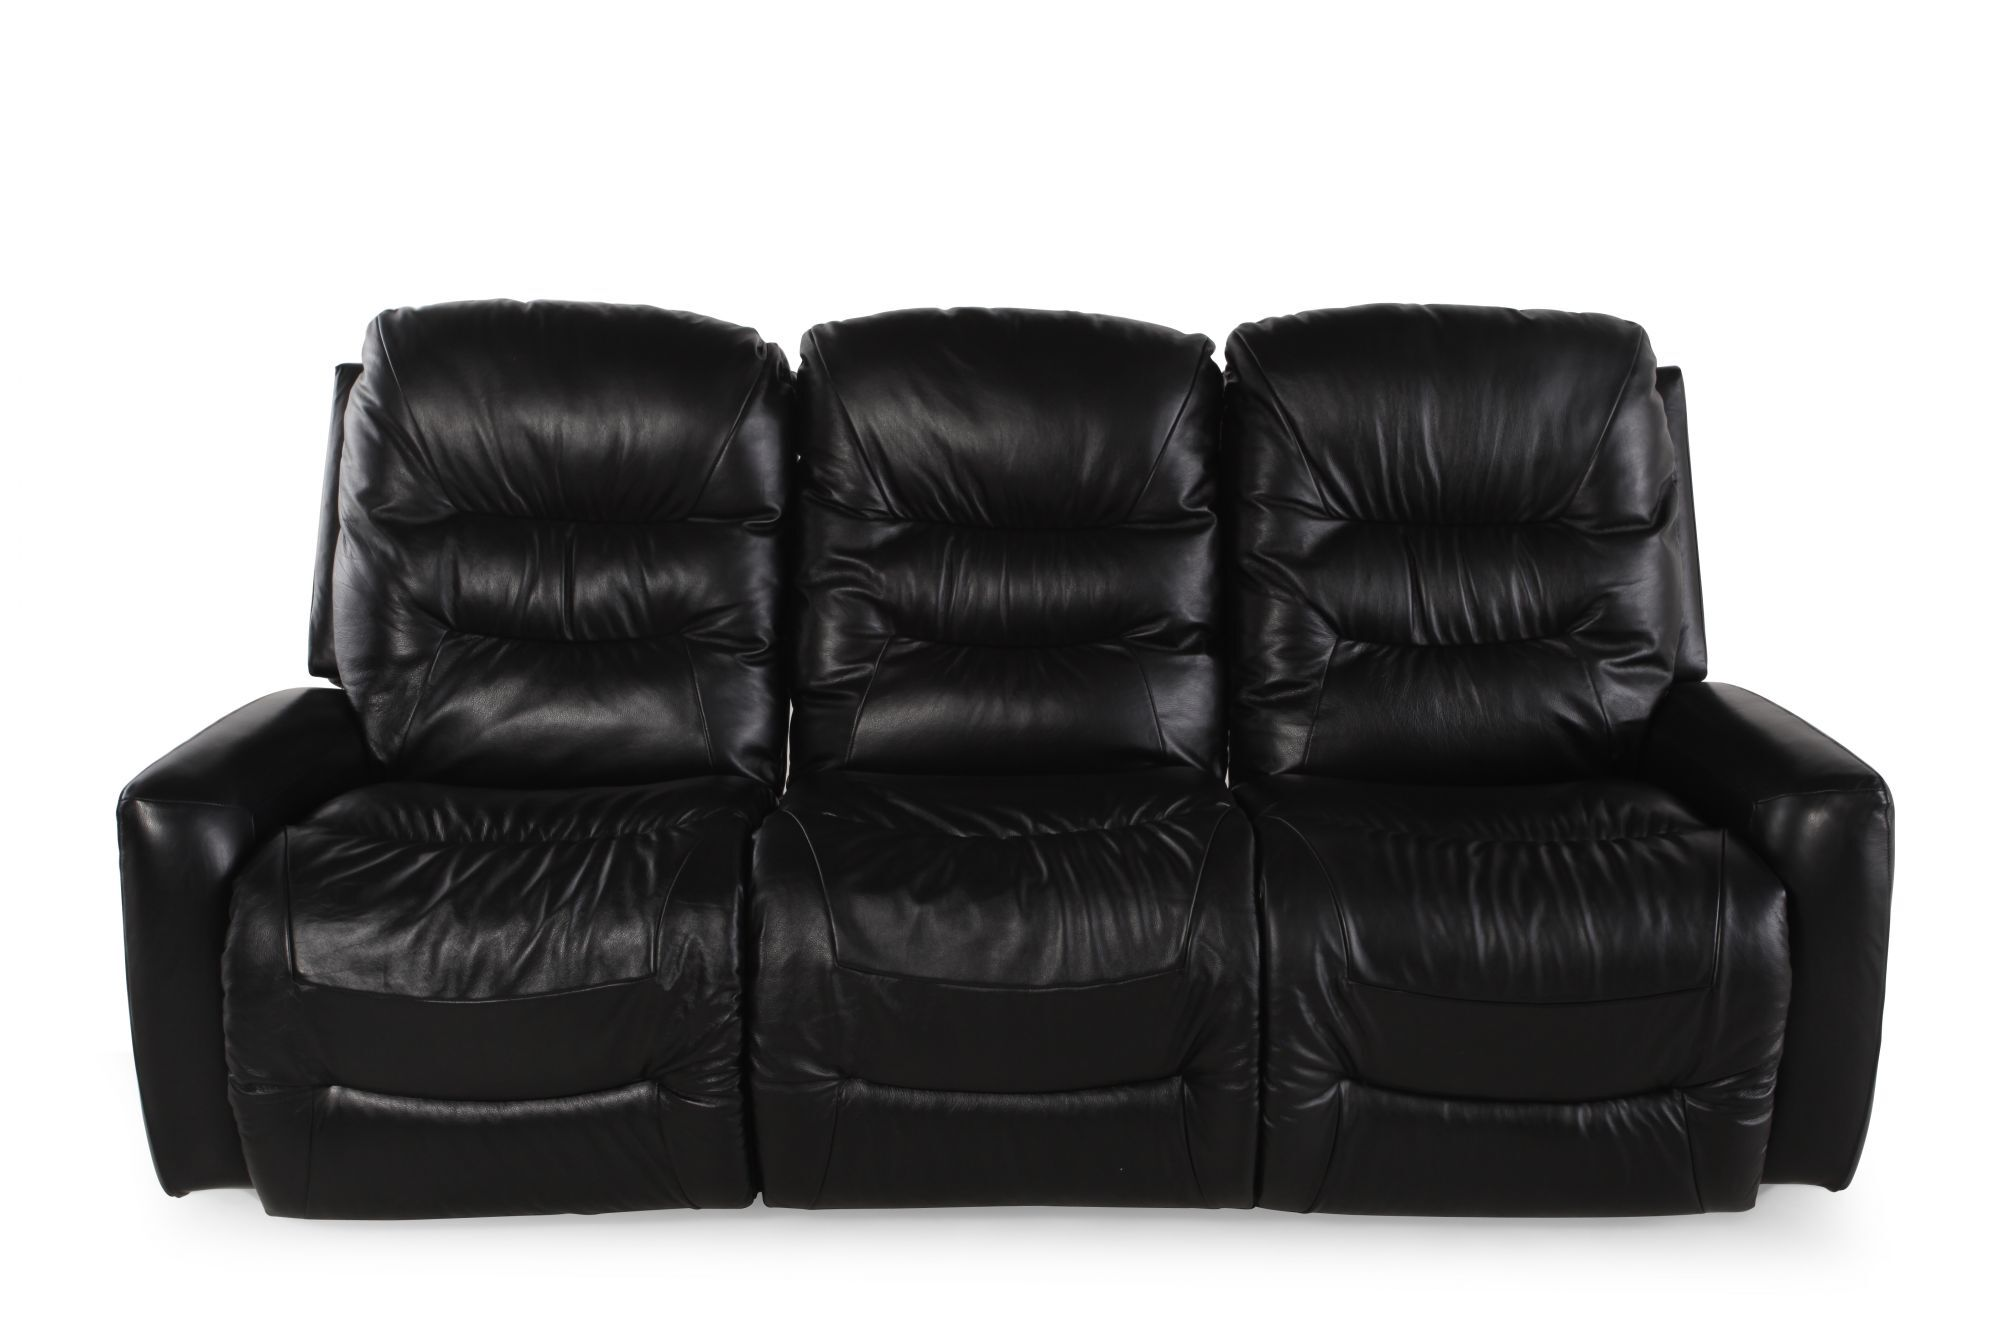 La-Z-Boy Ace Black Reclining Sofa  sc 1 st  Mathis Brothers & La-Z-Boy Ace Black Reclining Sofa | Mathis Brothers Furniture islam-shia.org